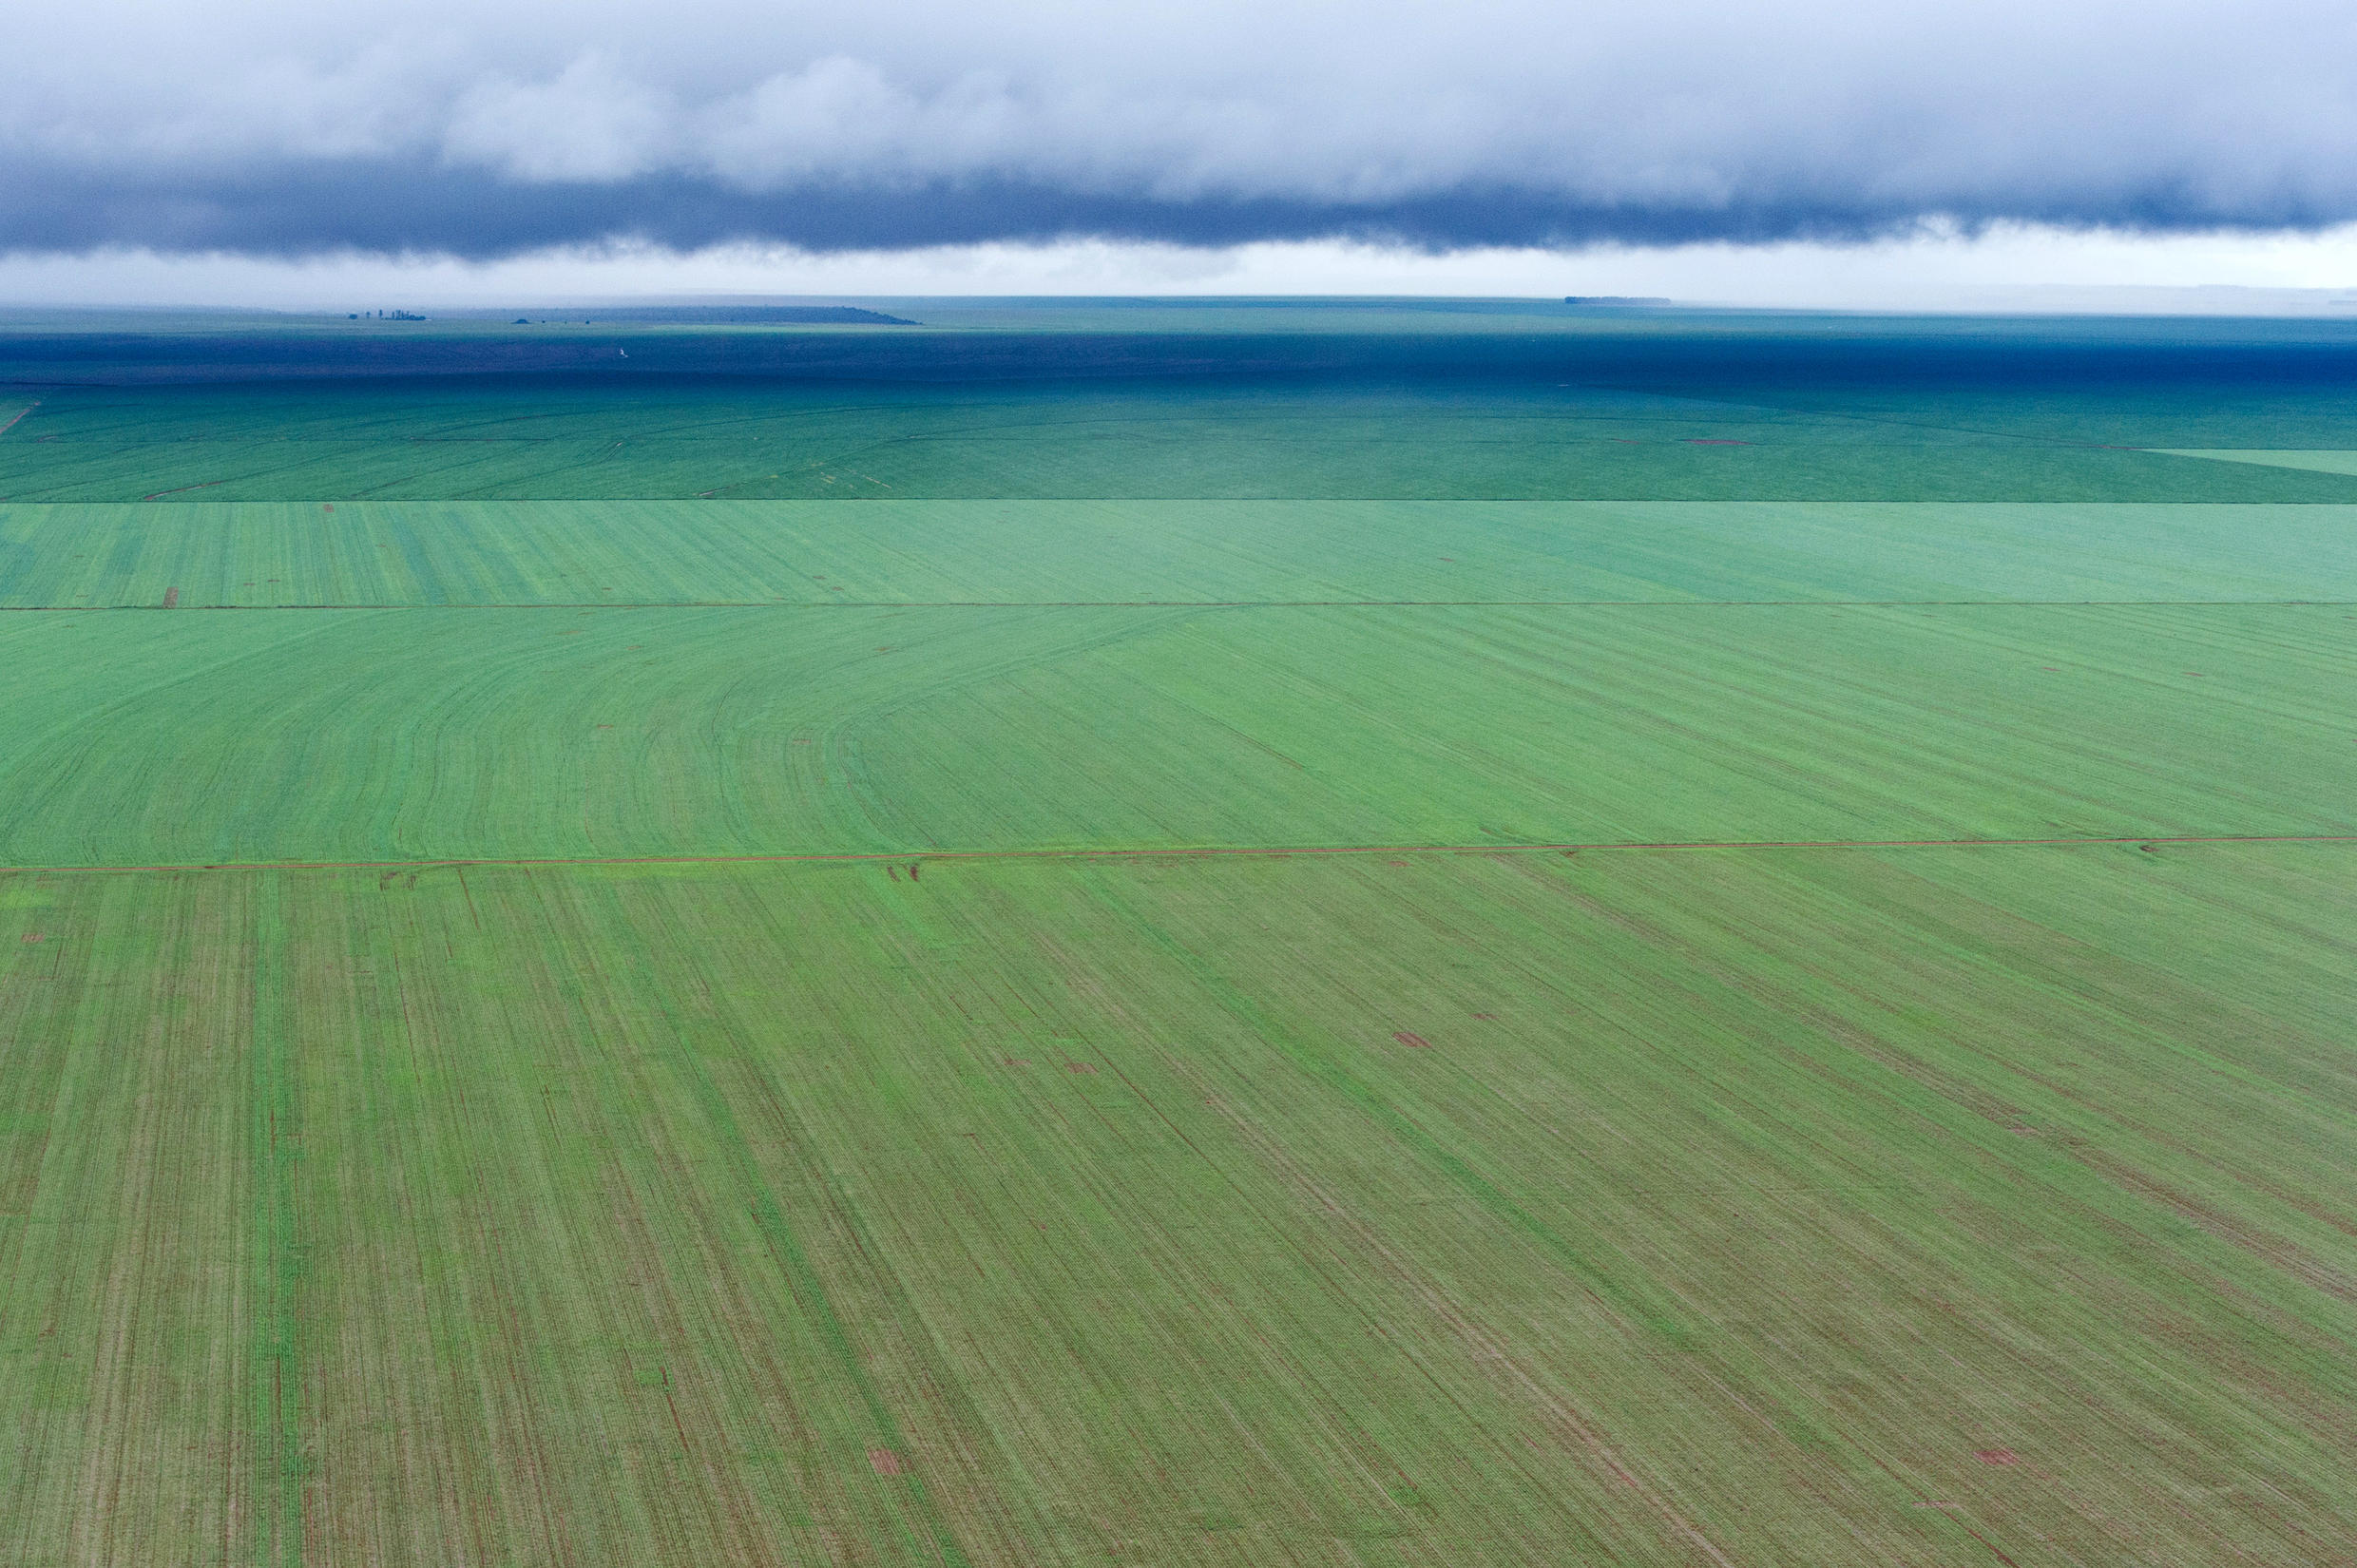 A vast soy bean field in in Campo Novo do Parecis, in Mato Grosso state, Brazil. The 'Ferrograo' is a controversial project of construction of a trans-Amazonian train in Brazil to speed up its huge grain exports.